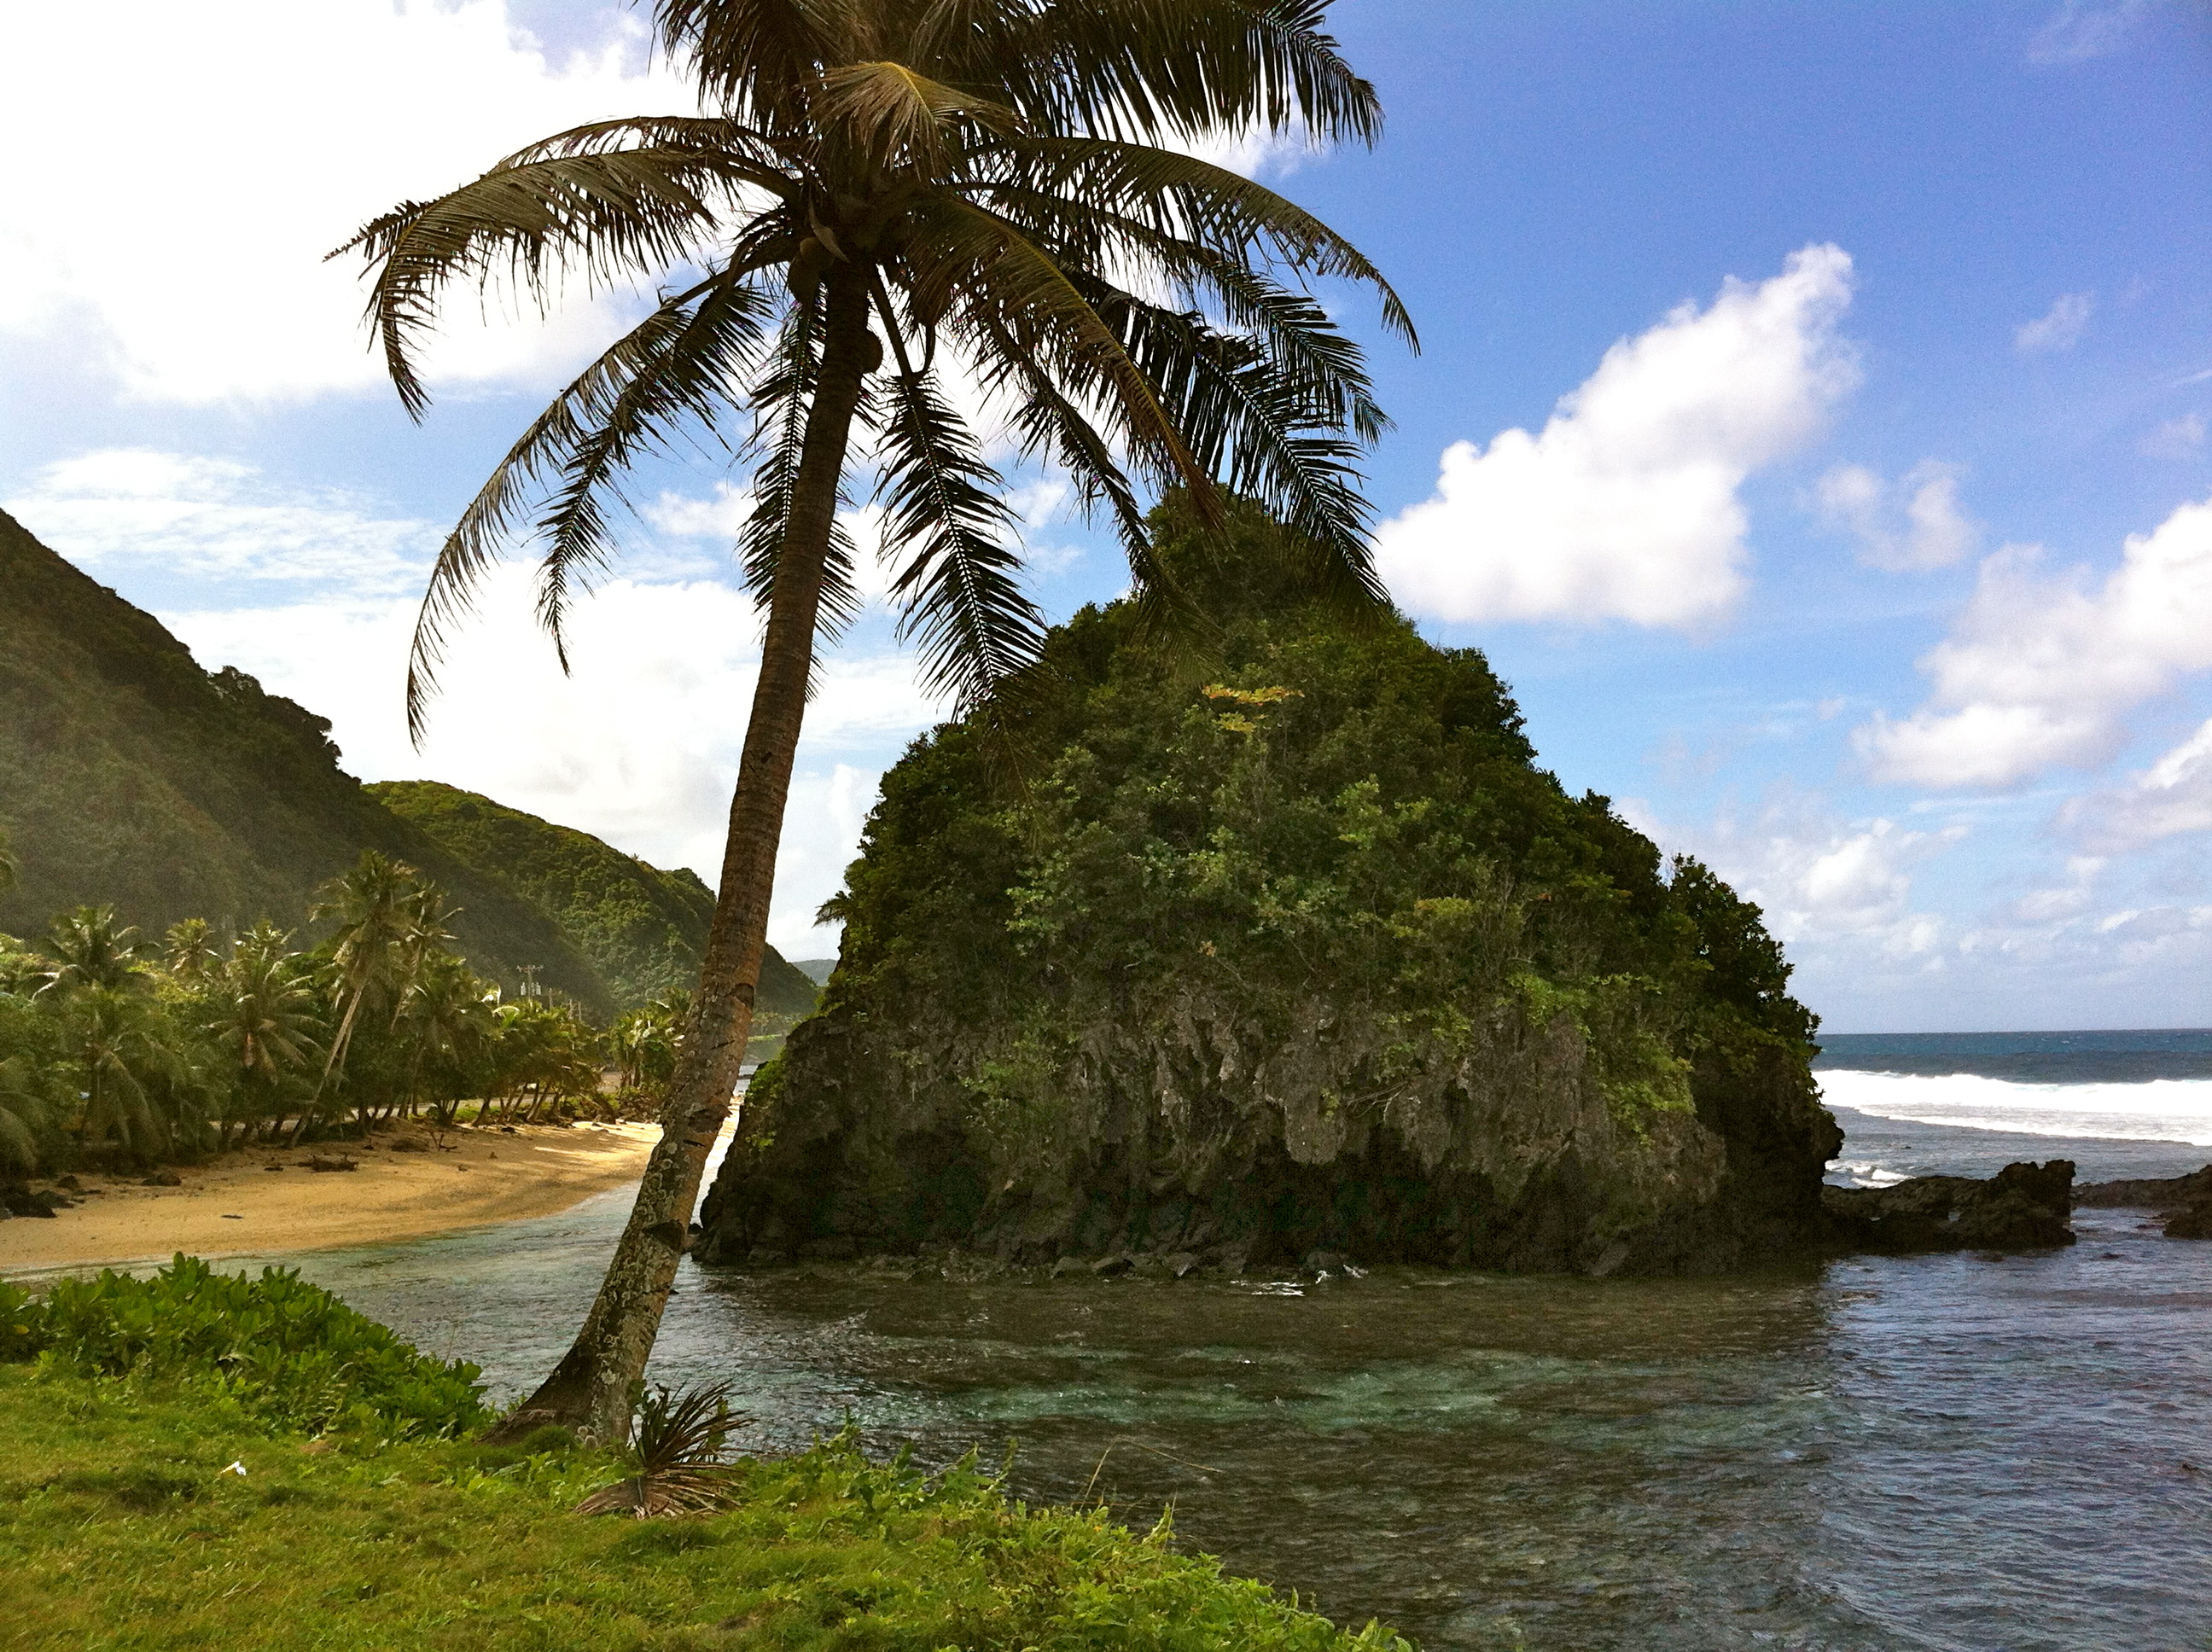 Travelling Dietitian has made it to American Samoa